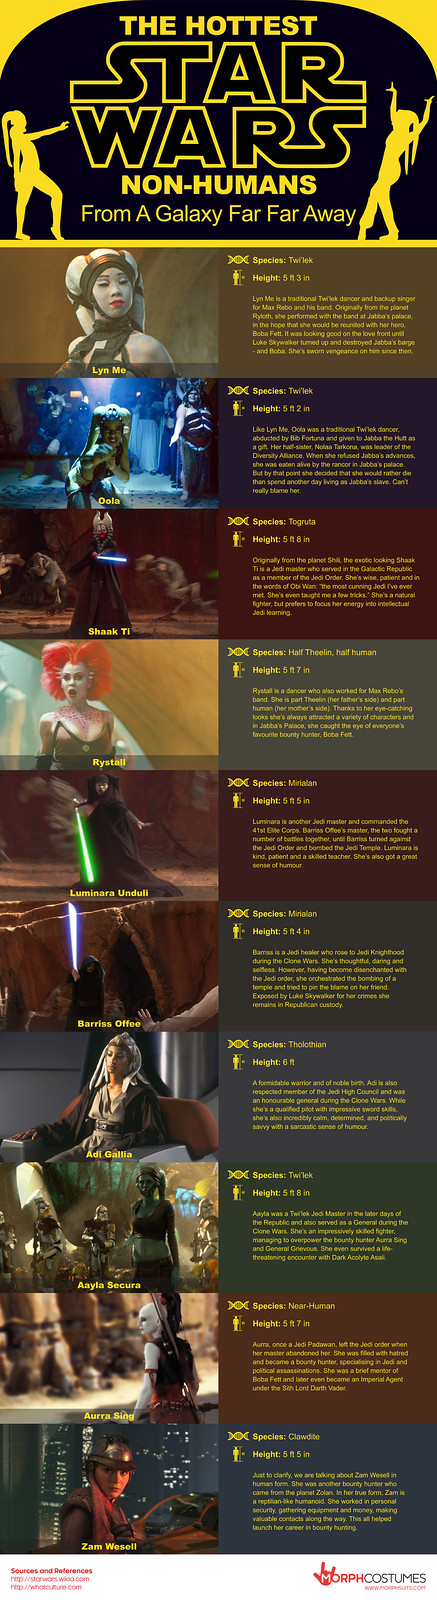 The-Hottest-Star-Wars-Non-Humans-Infographic-1